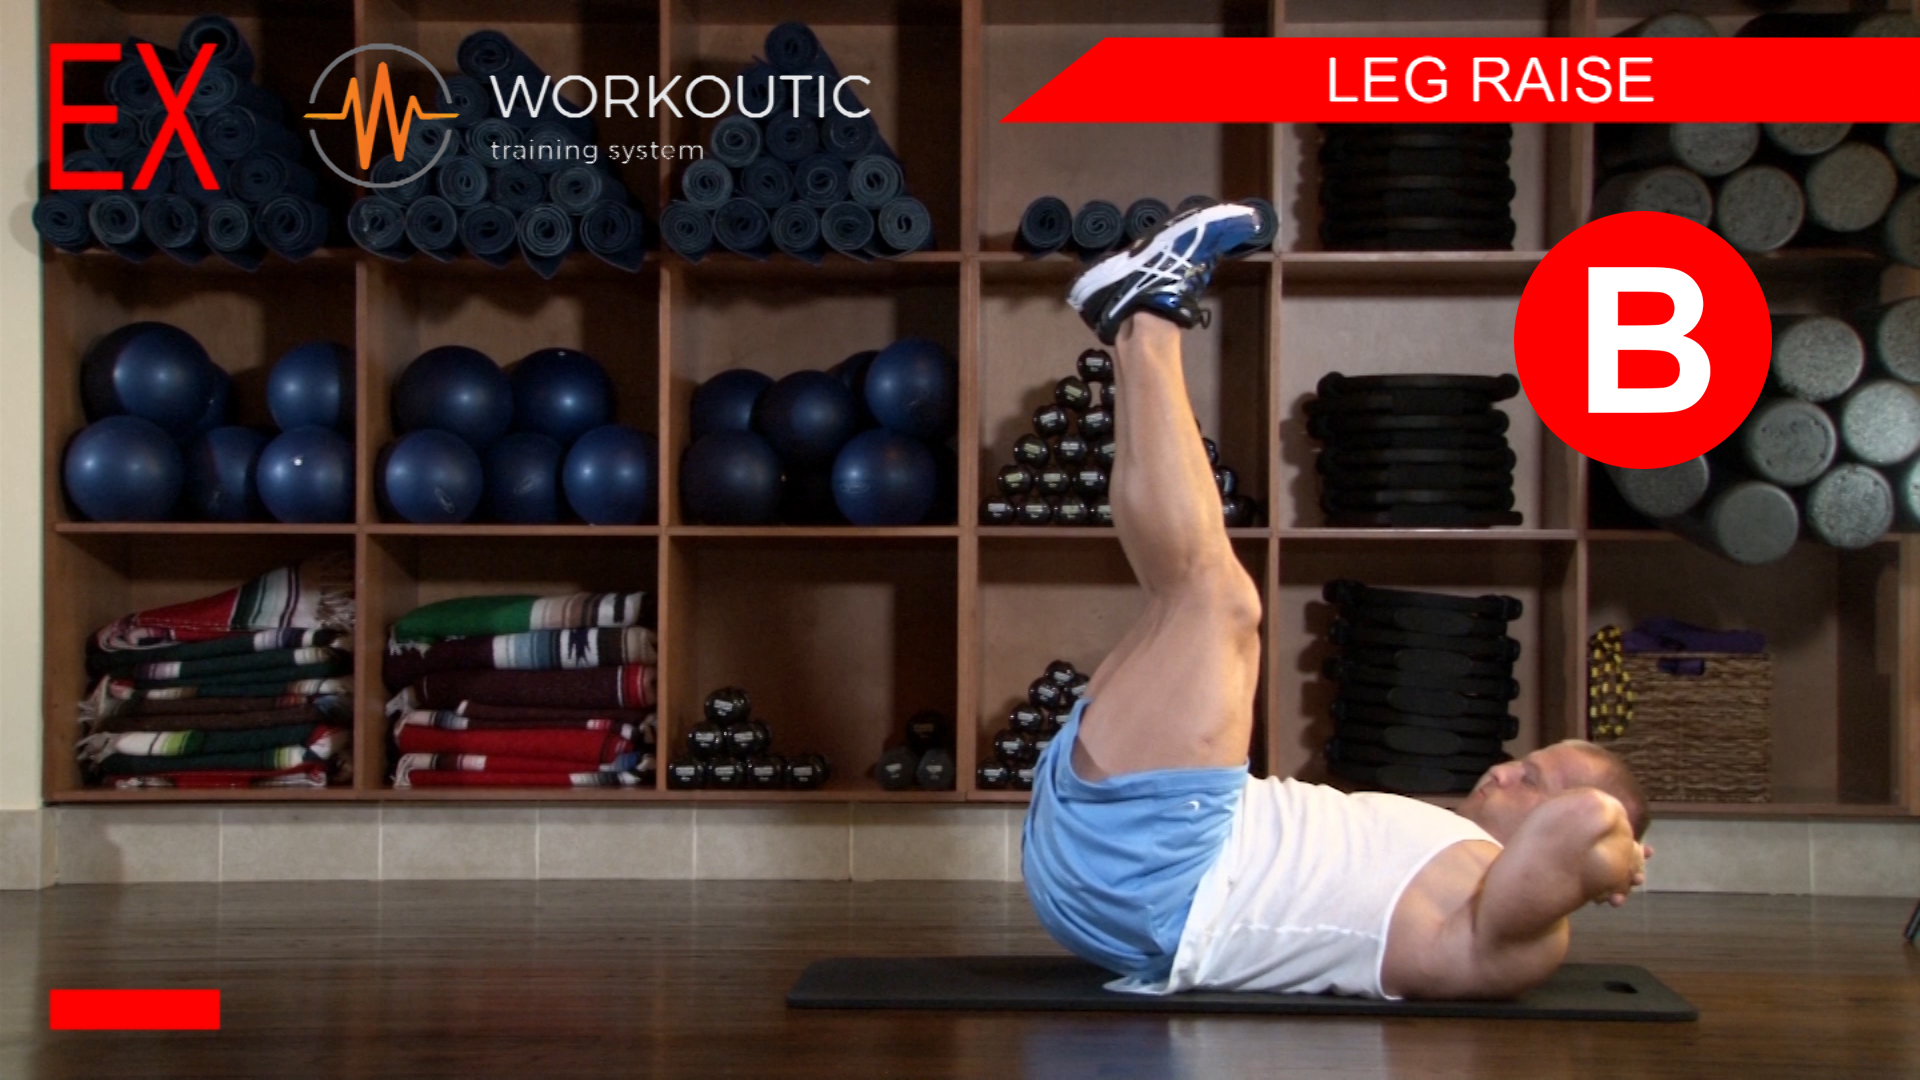 Abs Exercises - Workutic - 6 pack special - Leg Raise Exhale